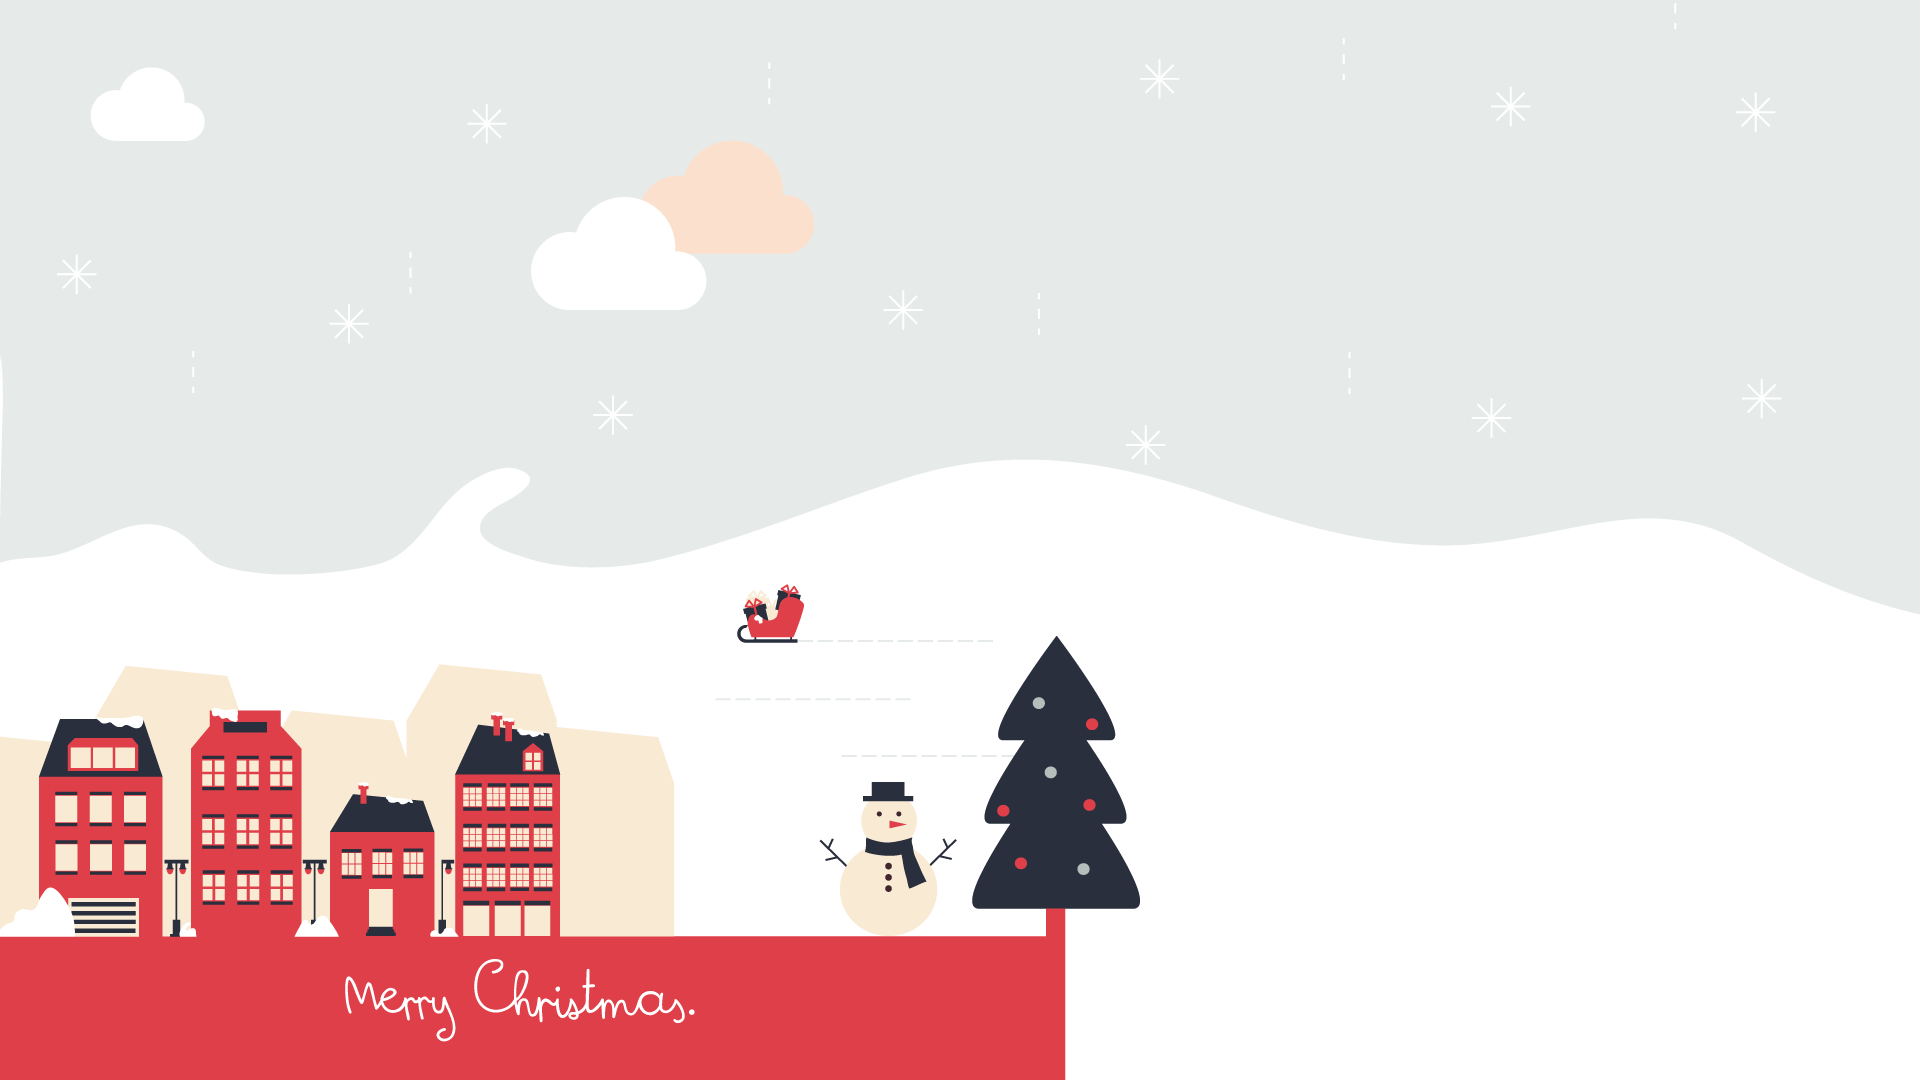 Christmas animated wallpaper full hd